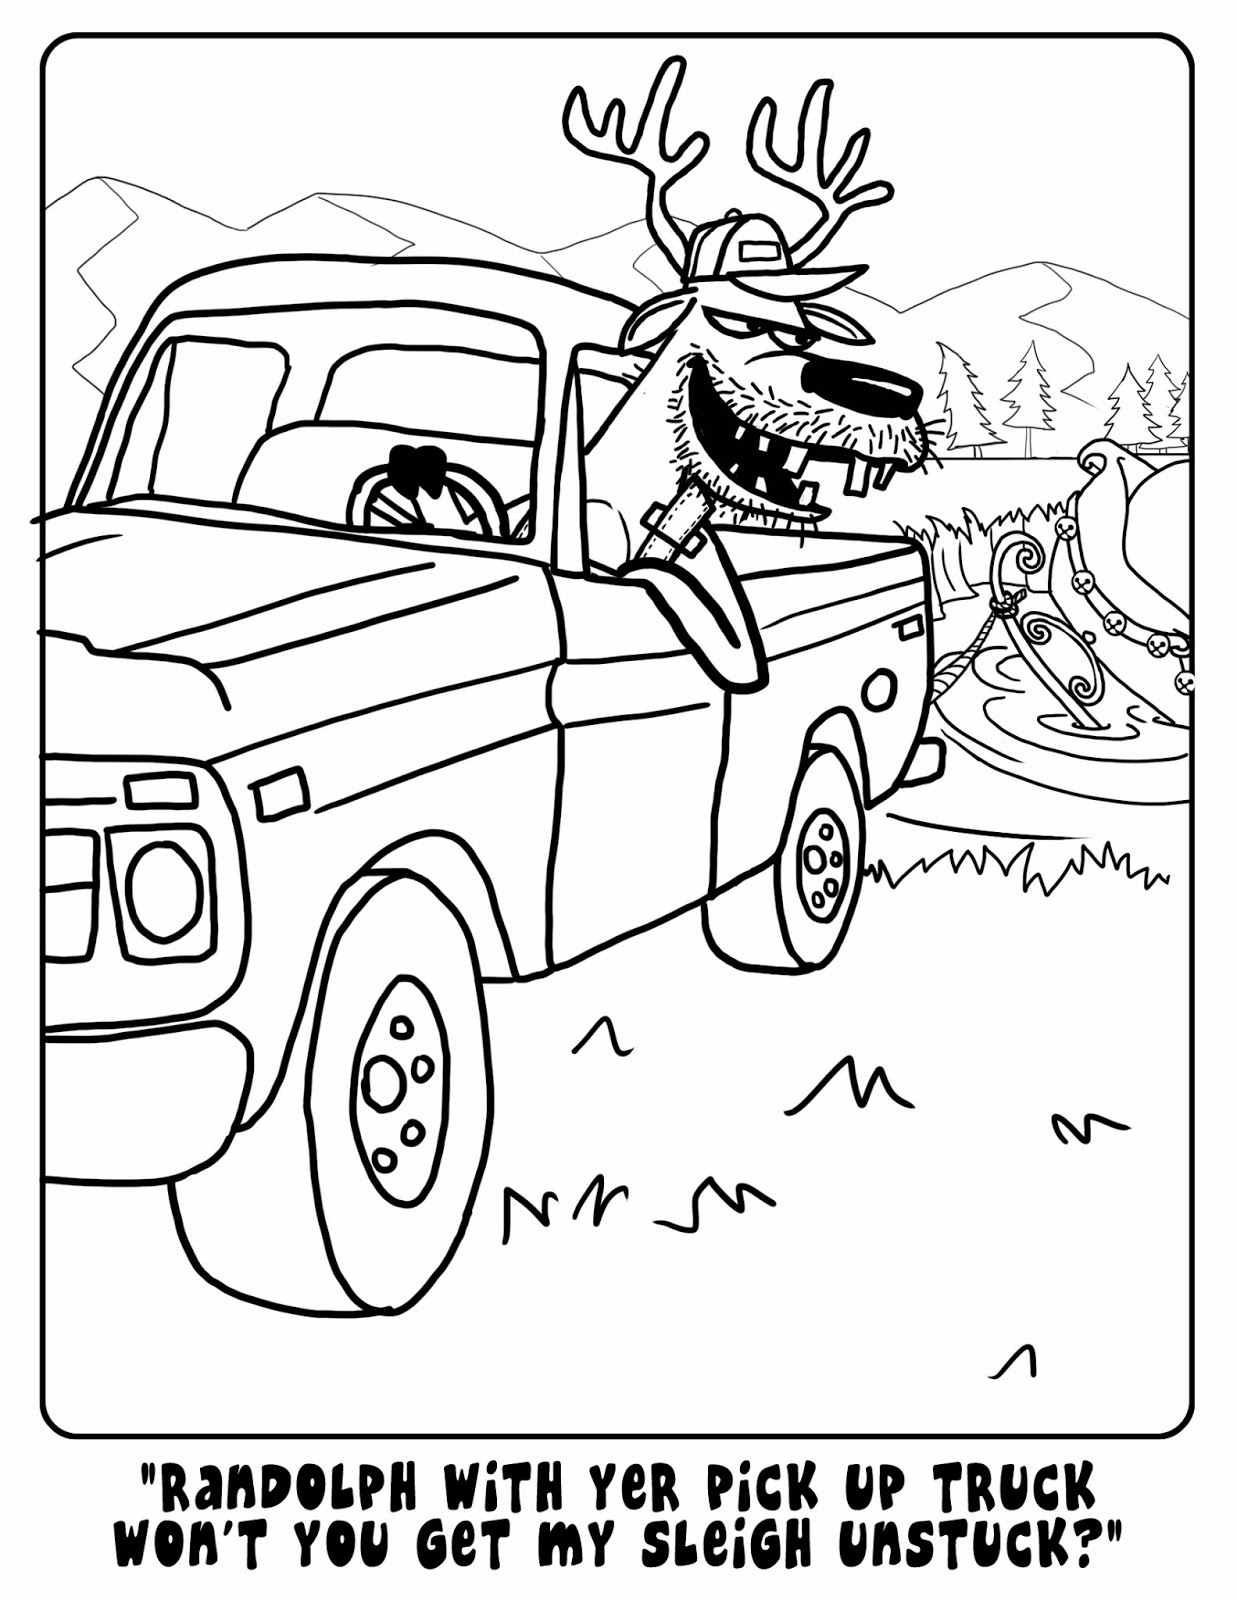 mississippi state fair coloring pages - photo #10